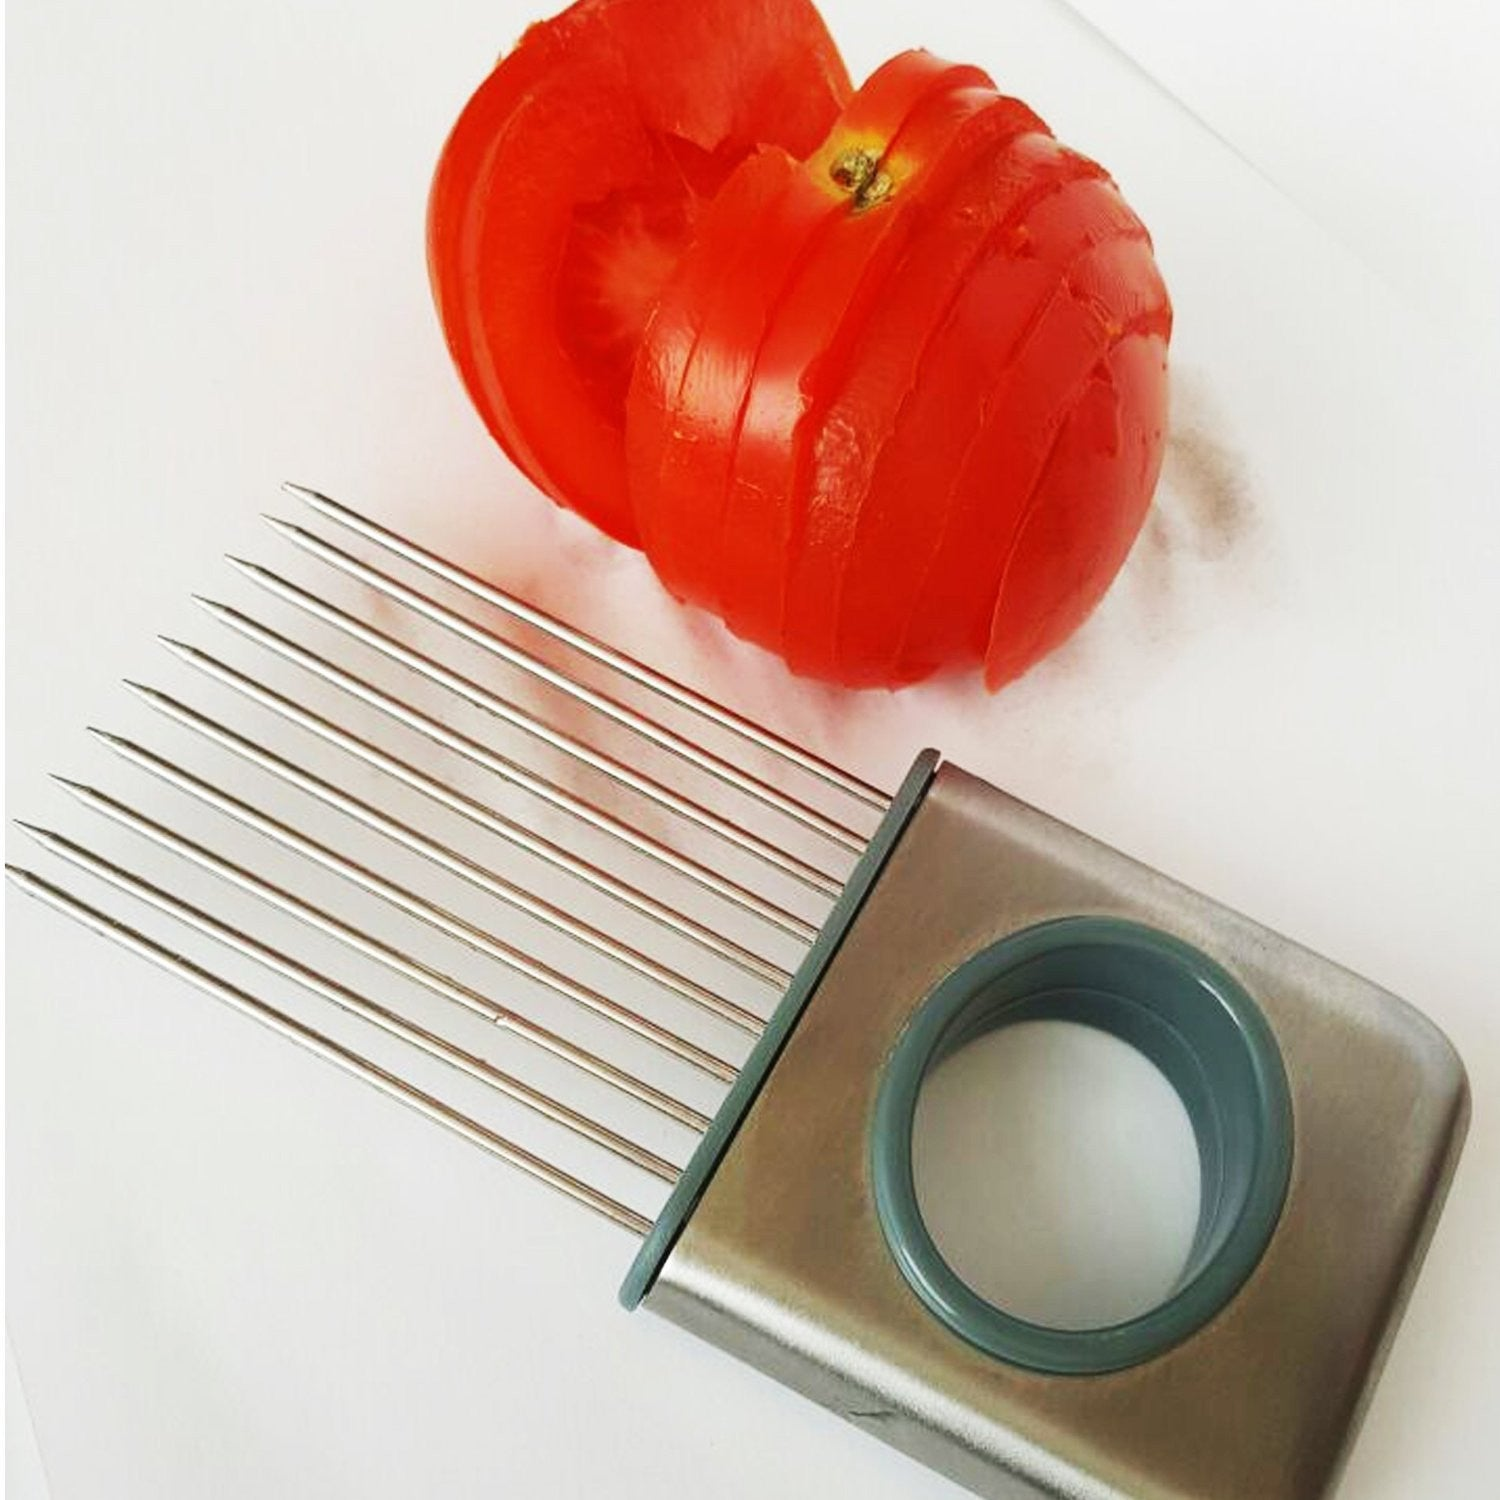 KITCHEN GADGET EASY SLICE AID